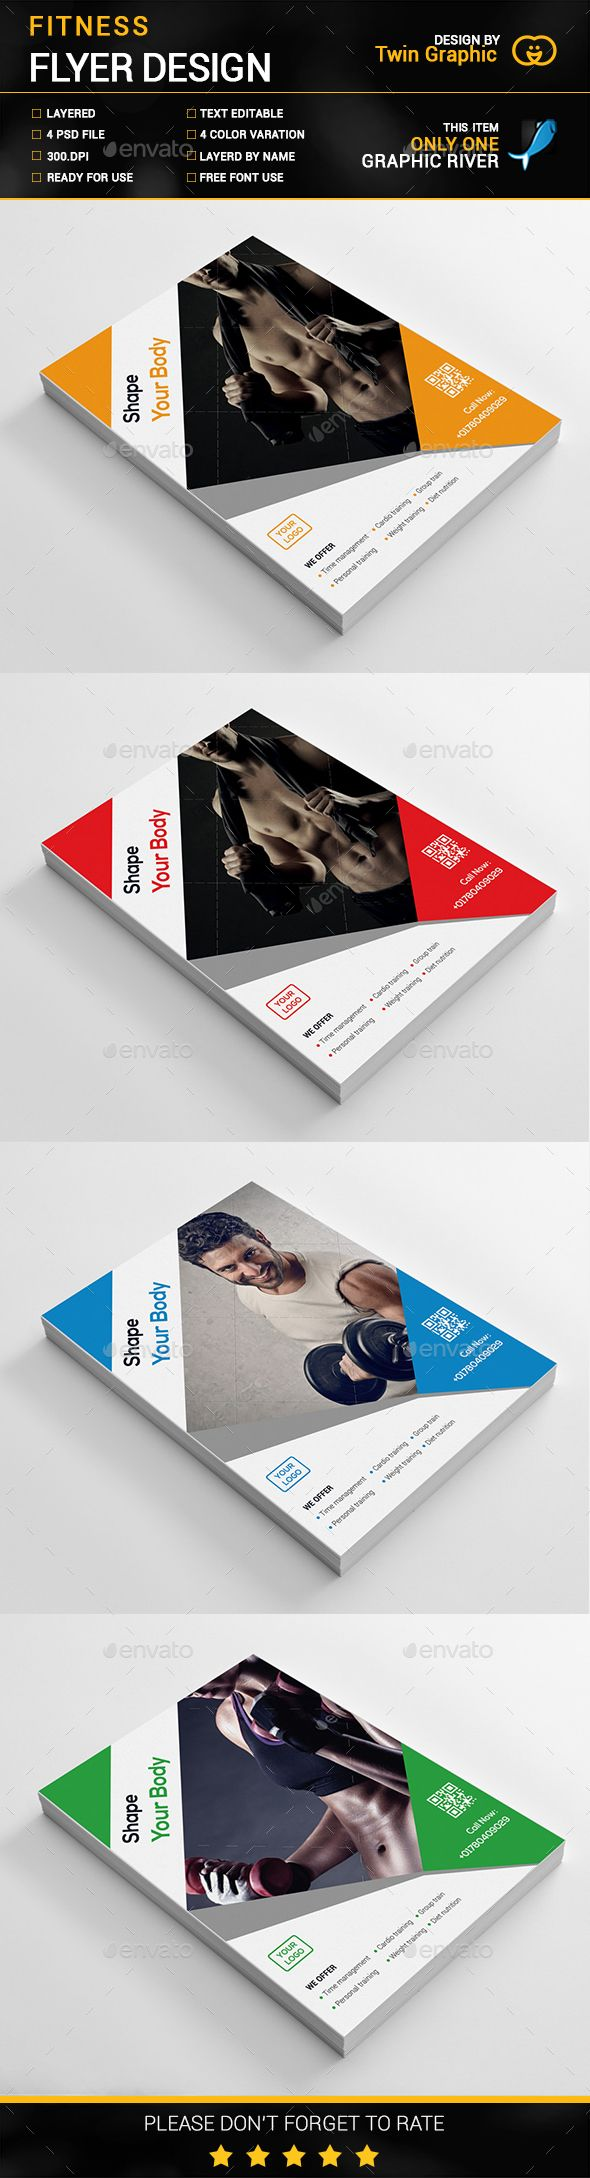 gym fitness flyer design flyer template gym and flyers gym fitness flyer design corporate flyer template psd here